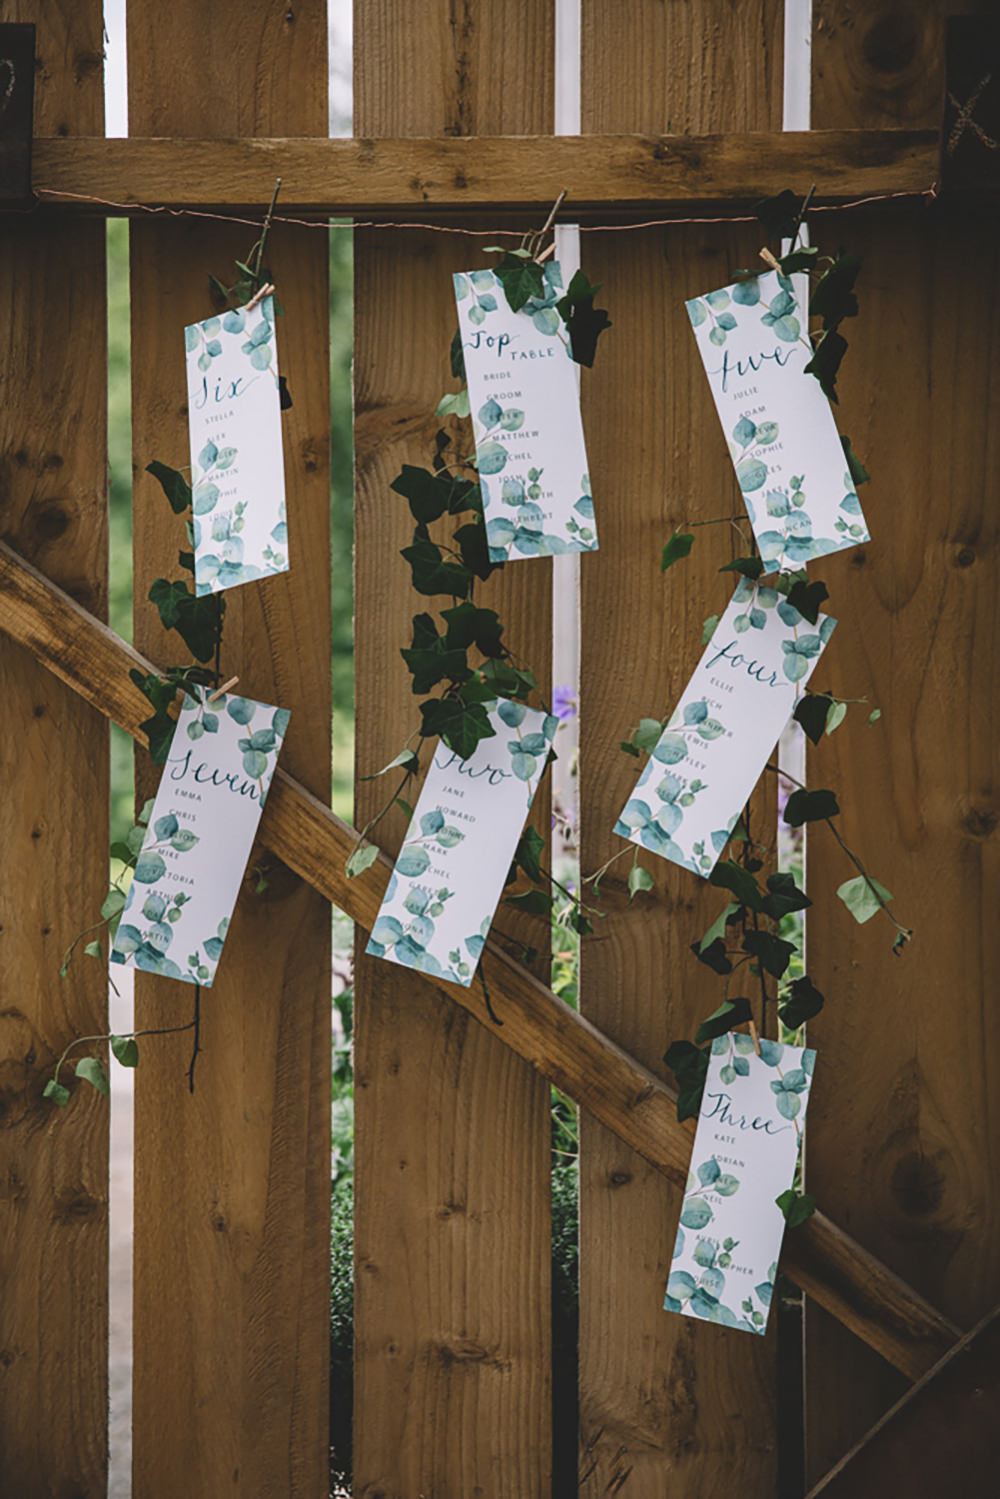 Seating Plan Table Chart Suspended Hanging Greenery Free Spirited Wedding Ideas Woodland Lumiere Photographic